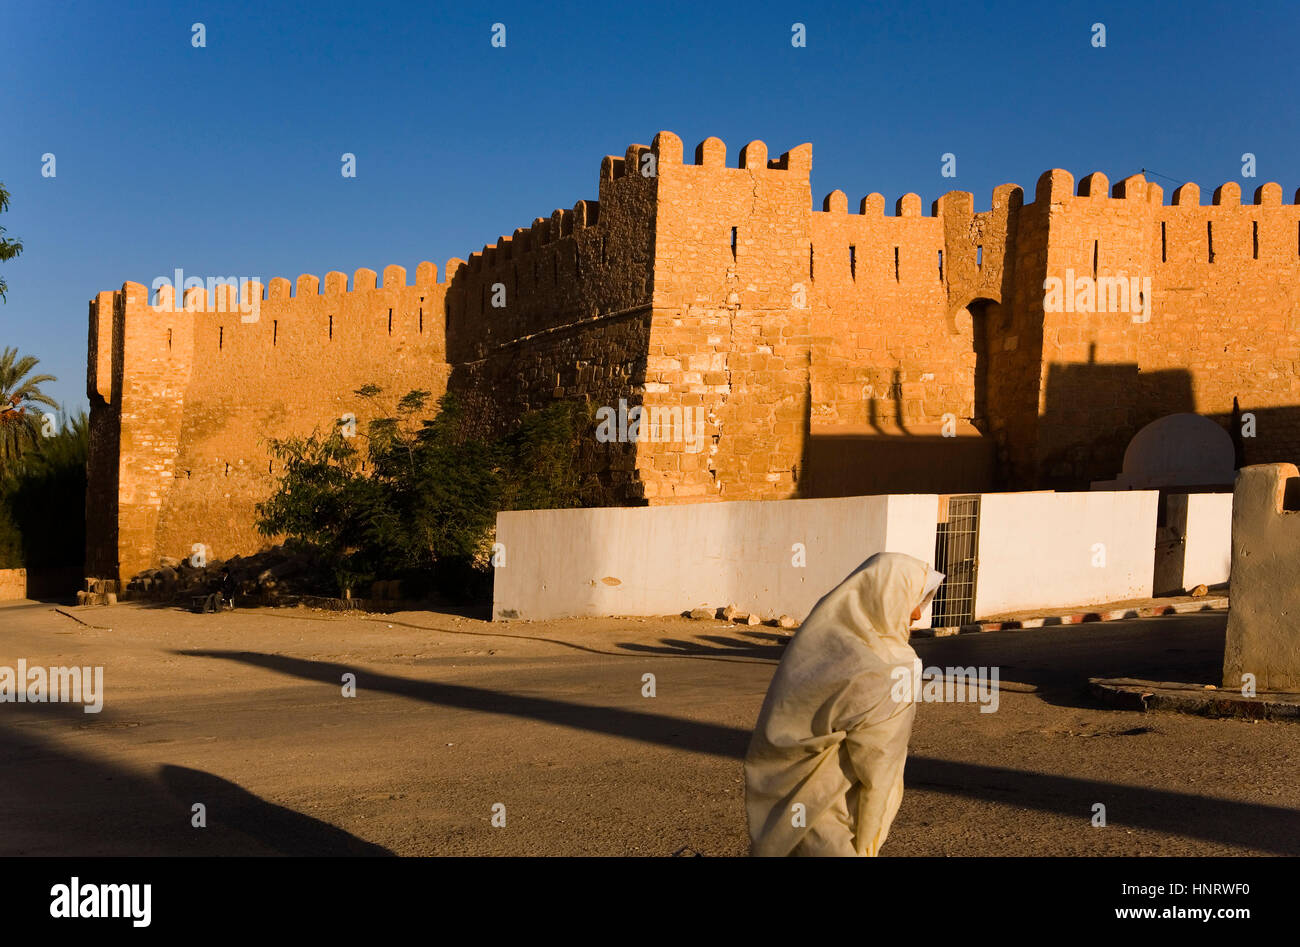 Tunisia.Gafsa. In background the Casbah - Stock Image